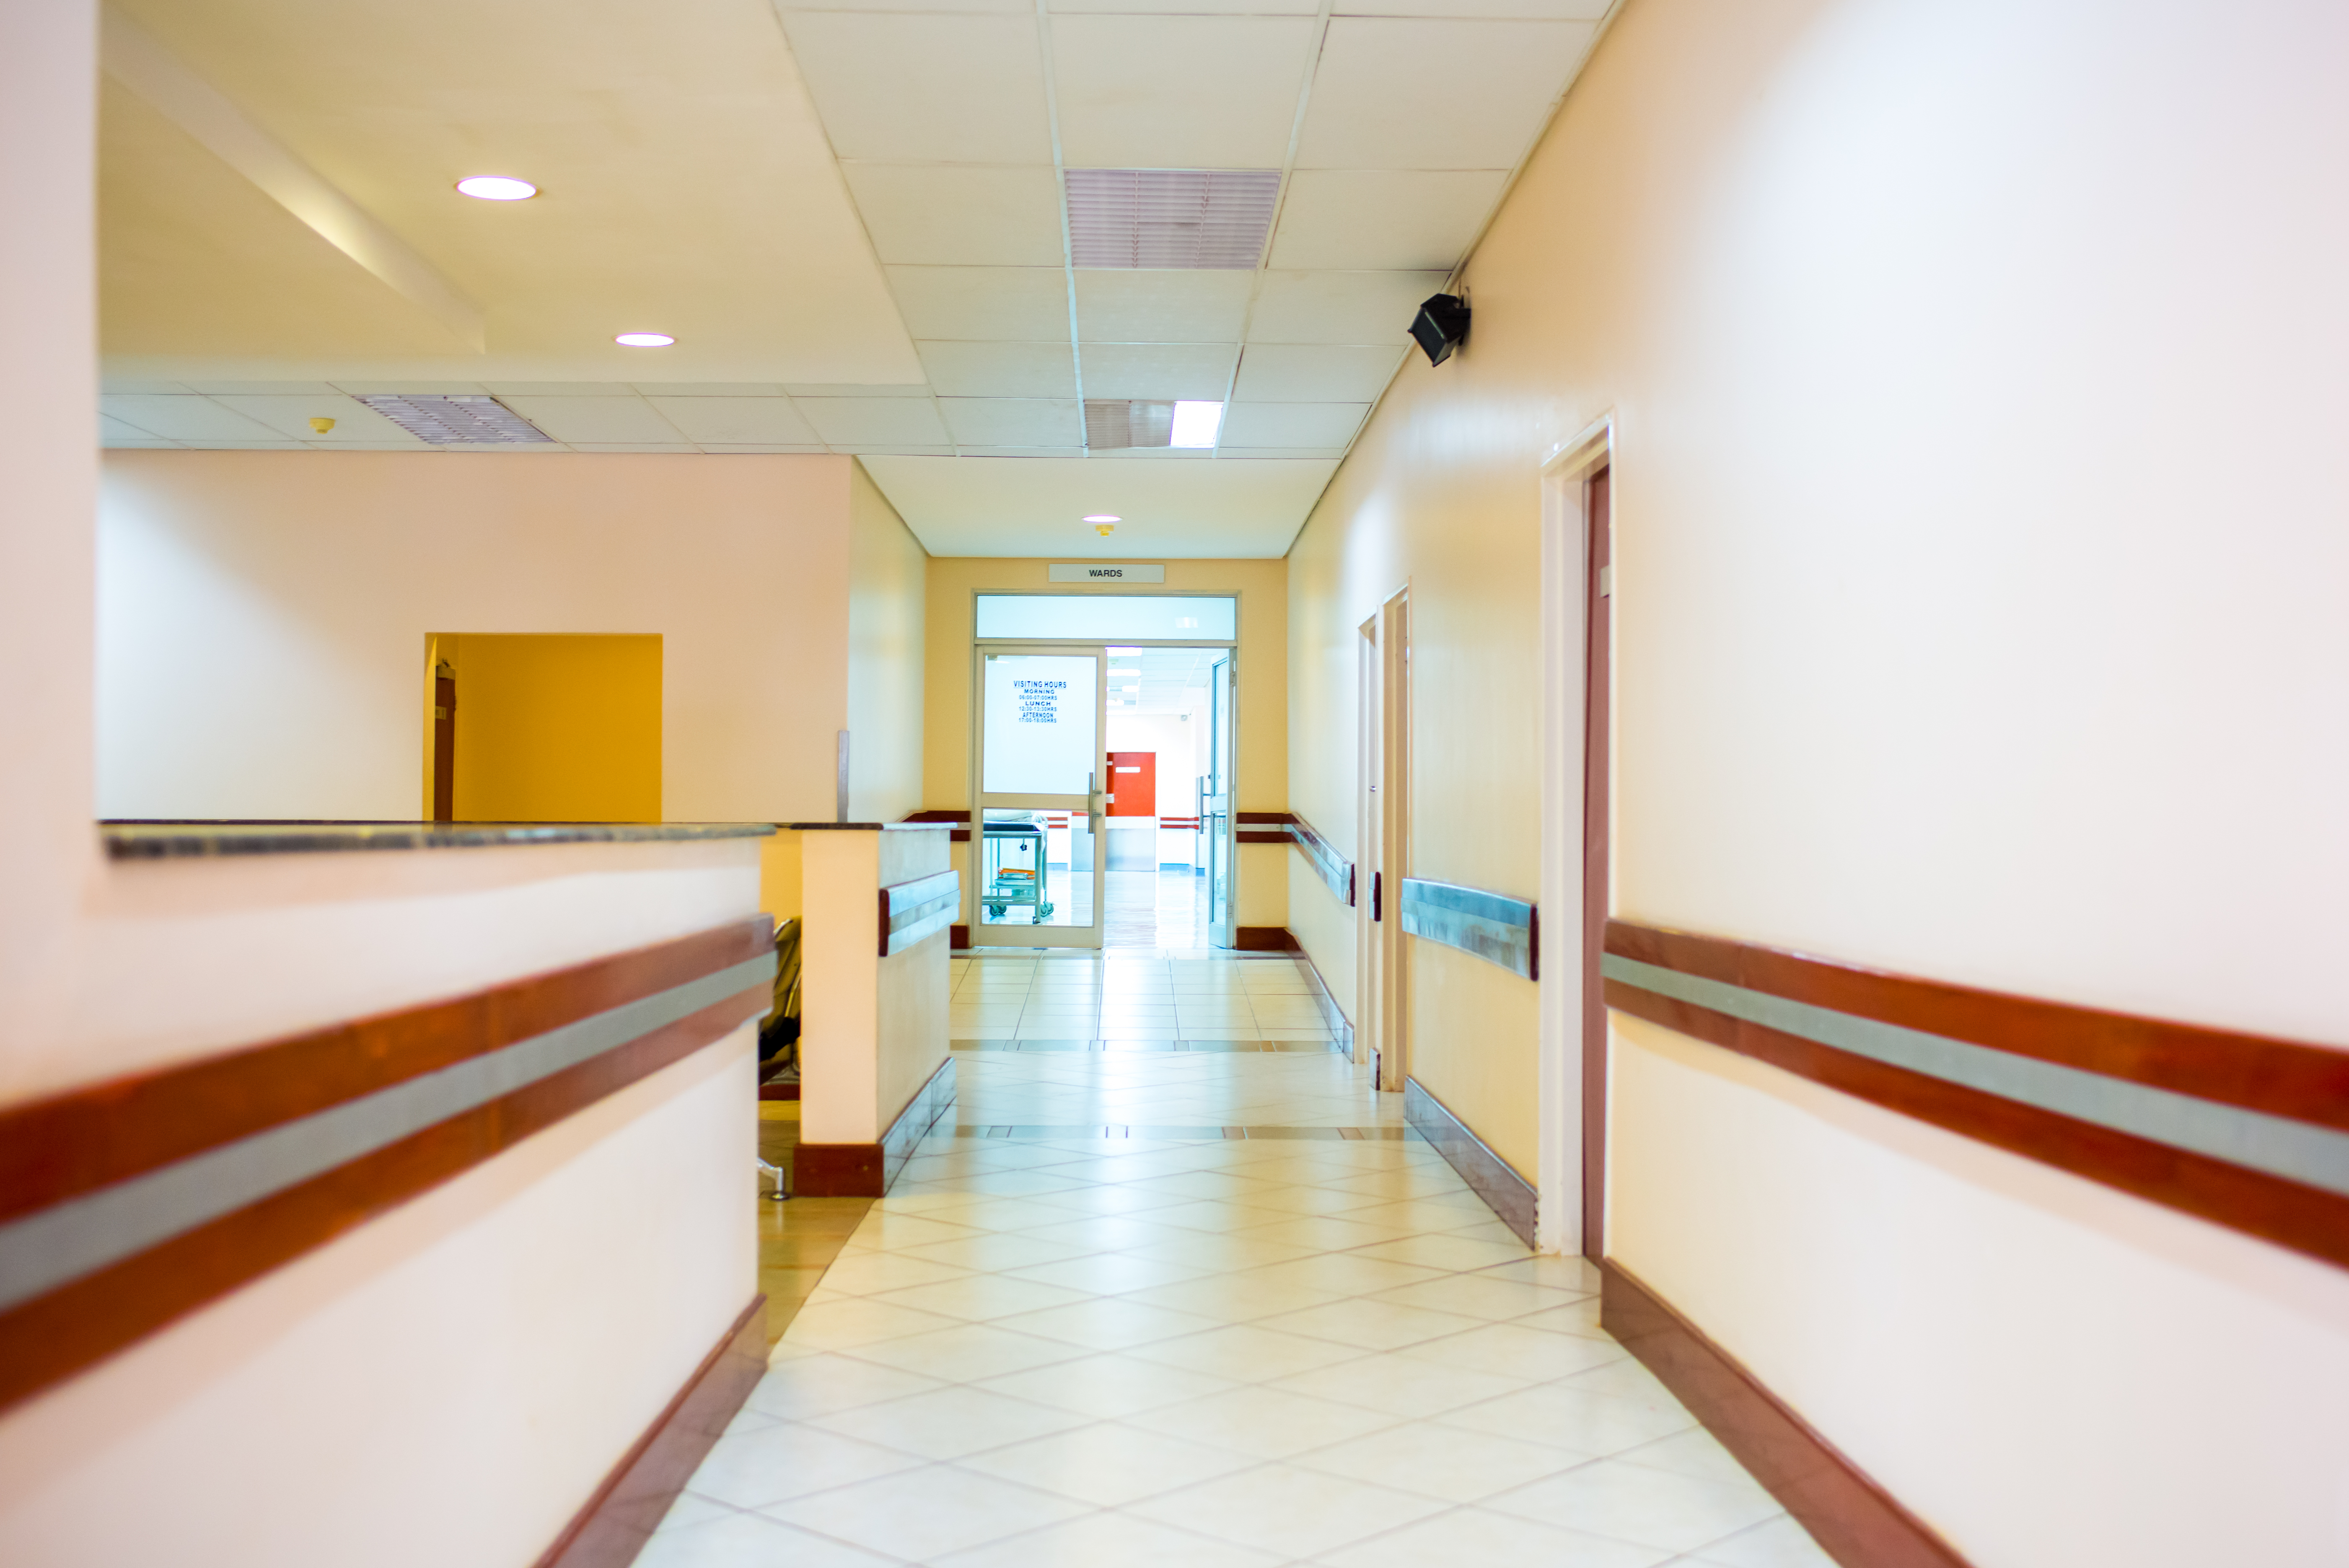 New In- and Out-Patients'Wing